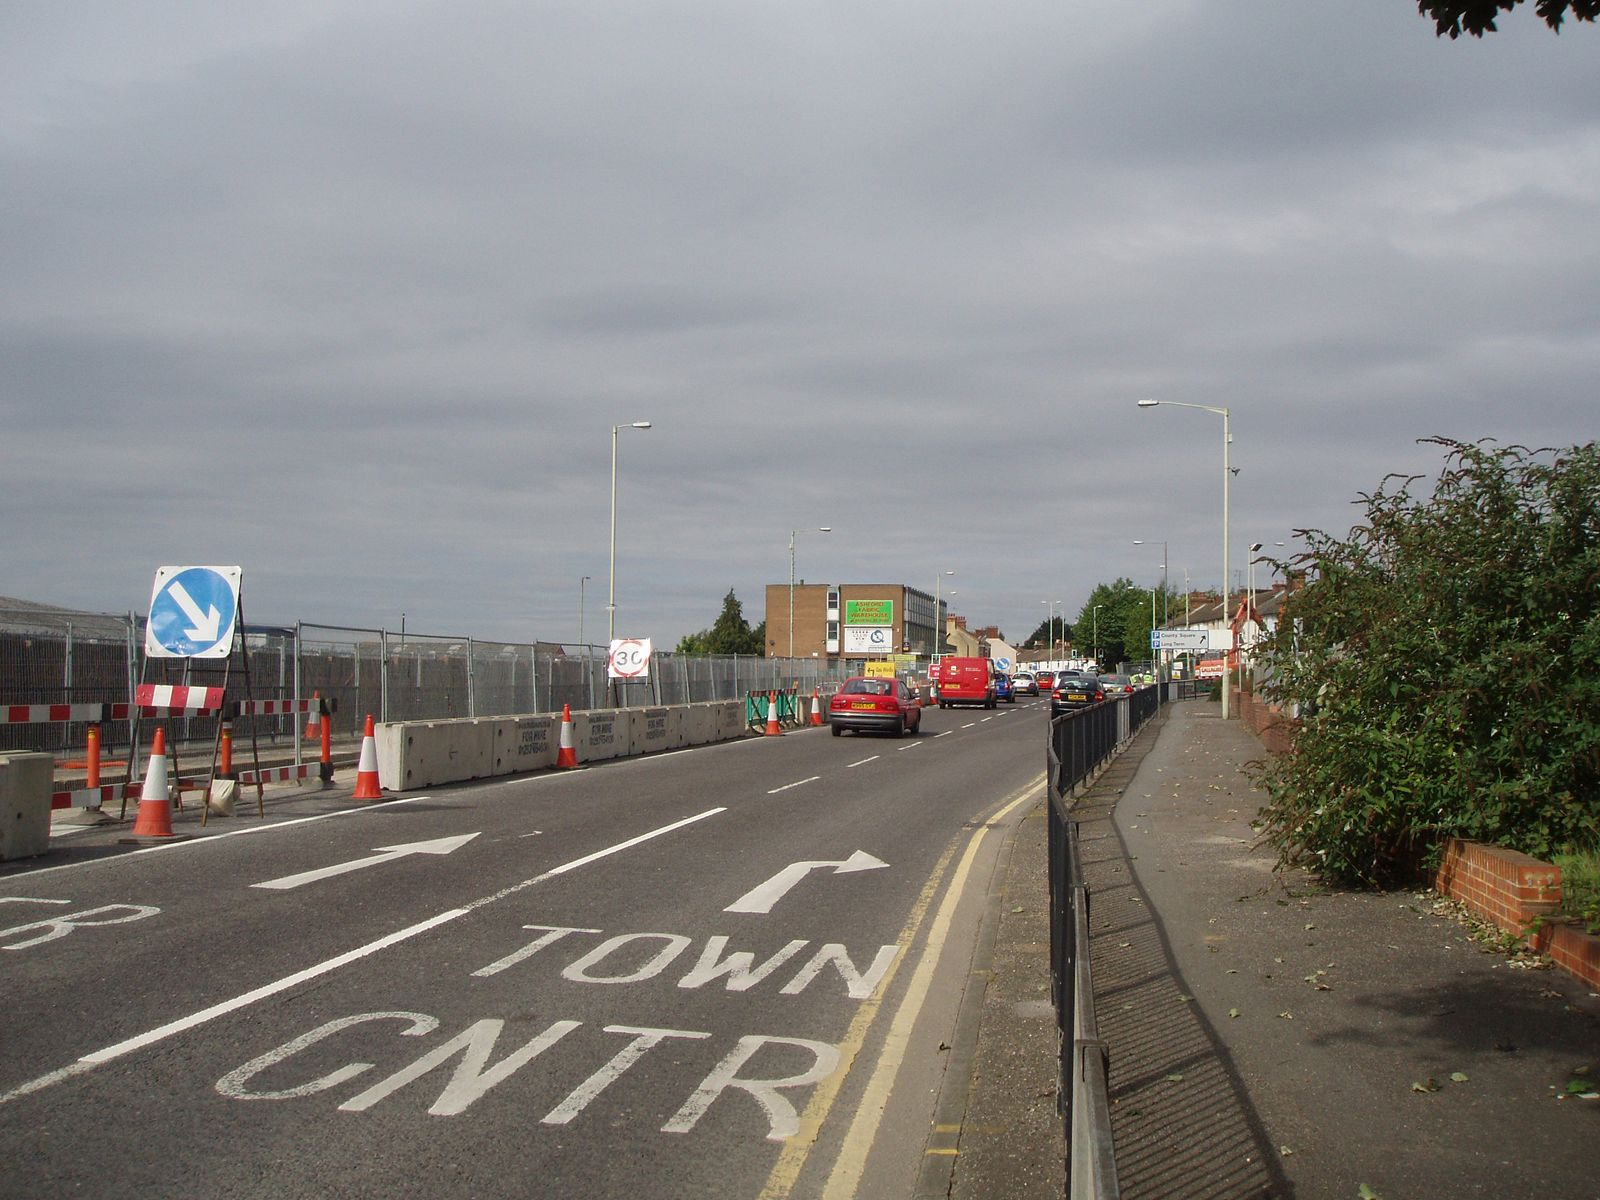 Elwick Road, Ashford, before _shared space_. Photo: BHB/Whitelaw Turkington